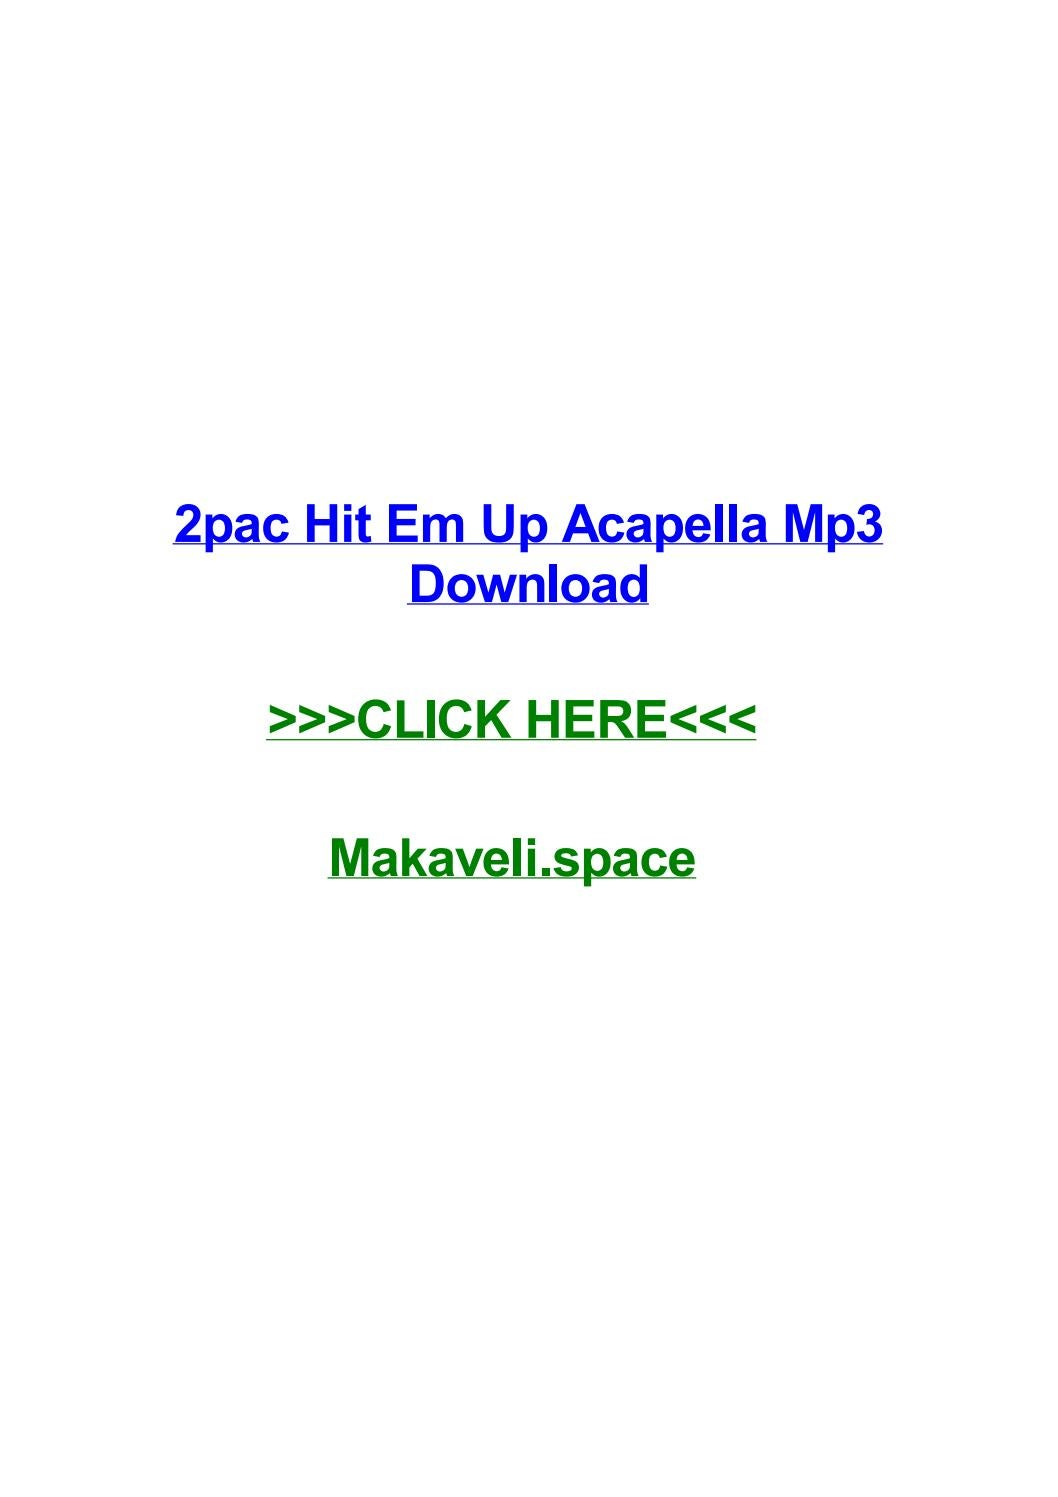 2pac hit em up acapella mp3 download by colekerc - issuu